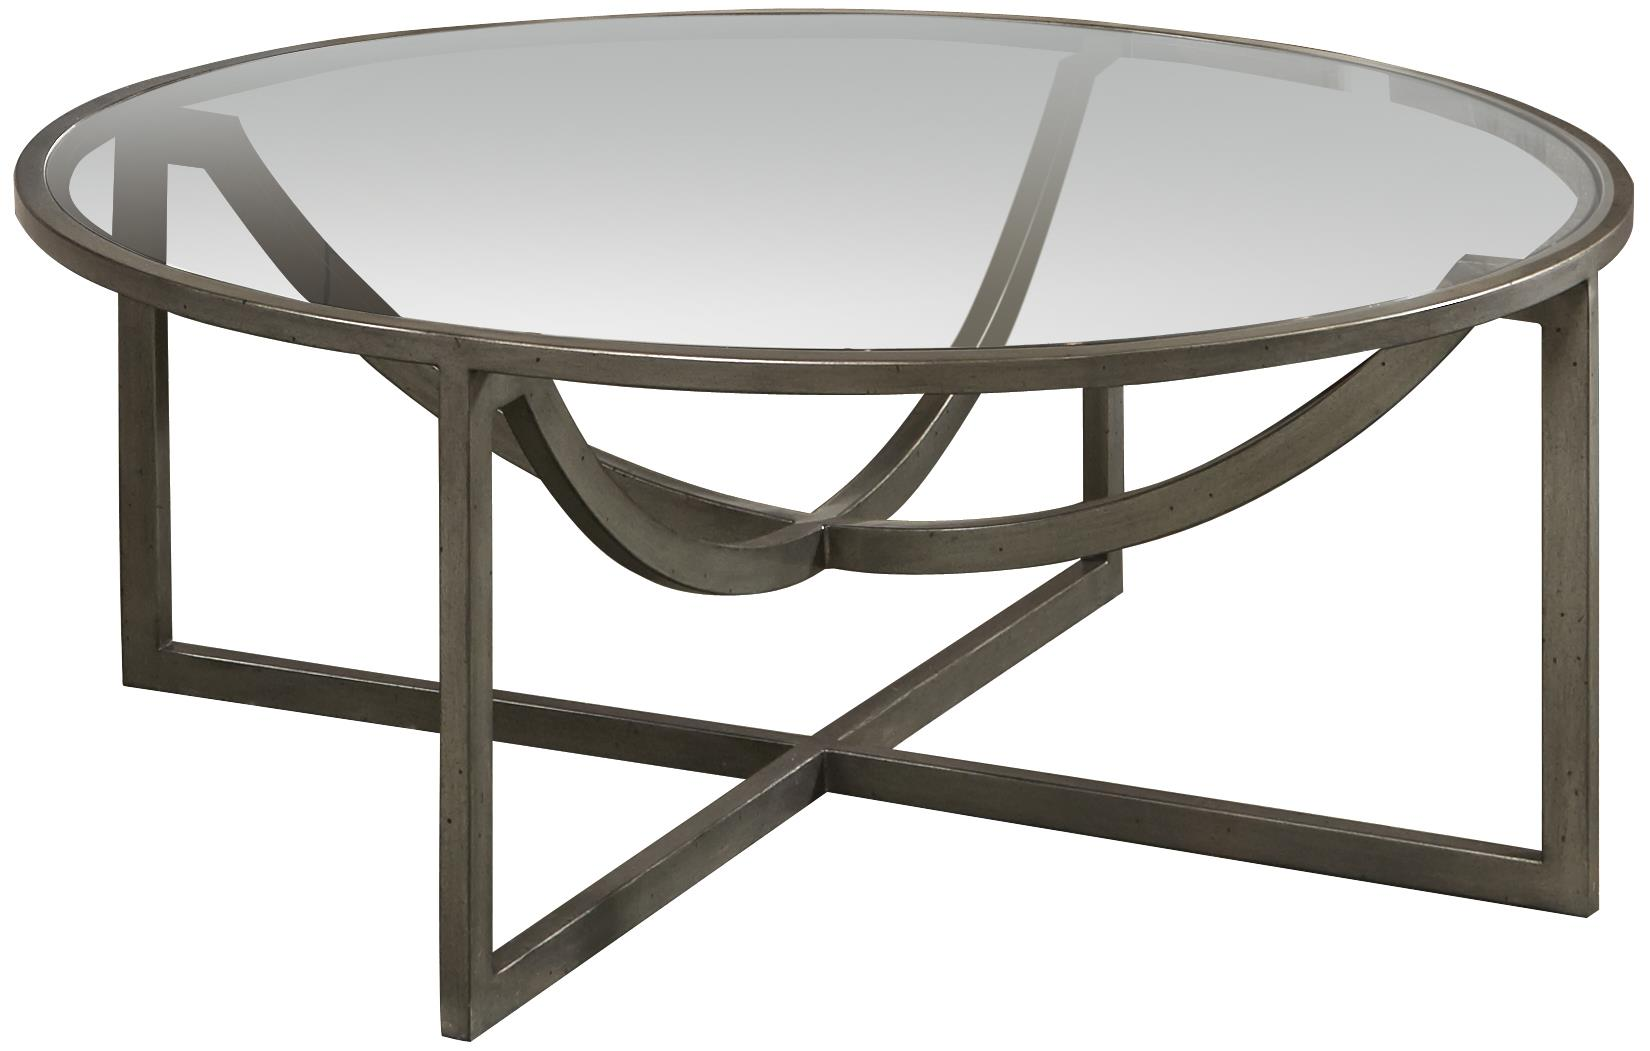 Belfort Signature Urban Treasures Shaw Round Cocktail Table - Item Number: 223311-1251